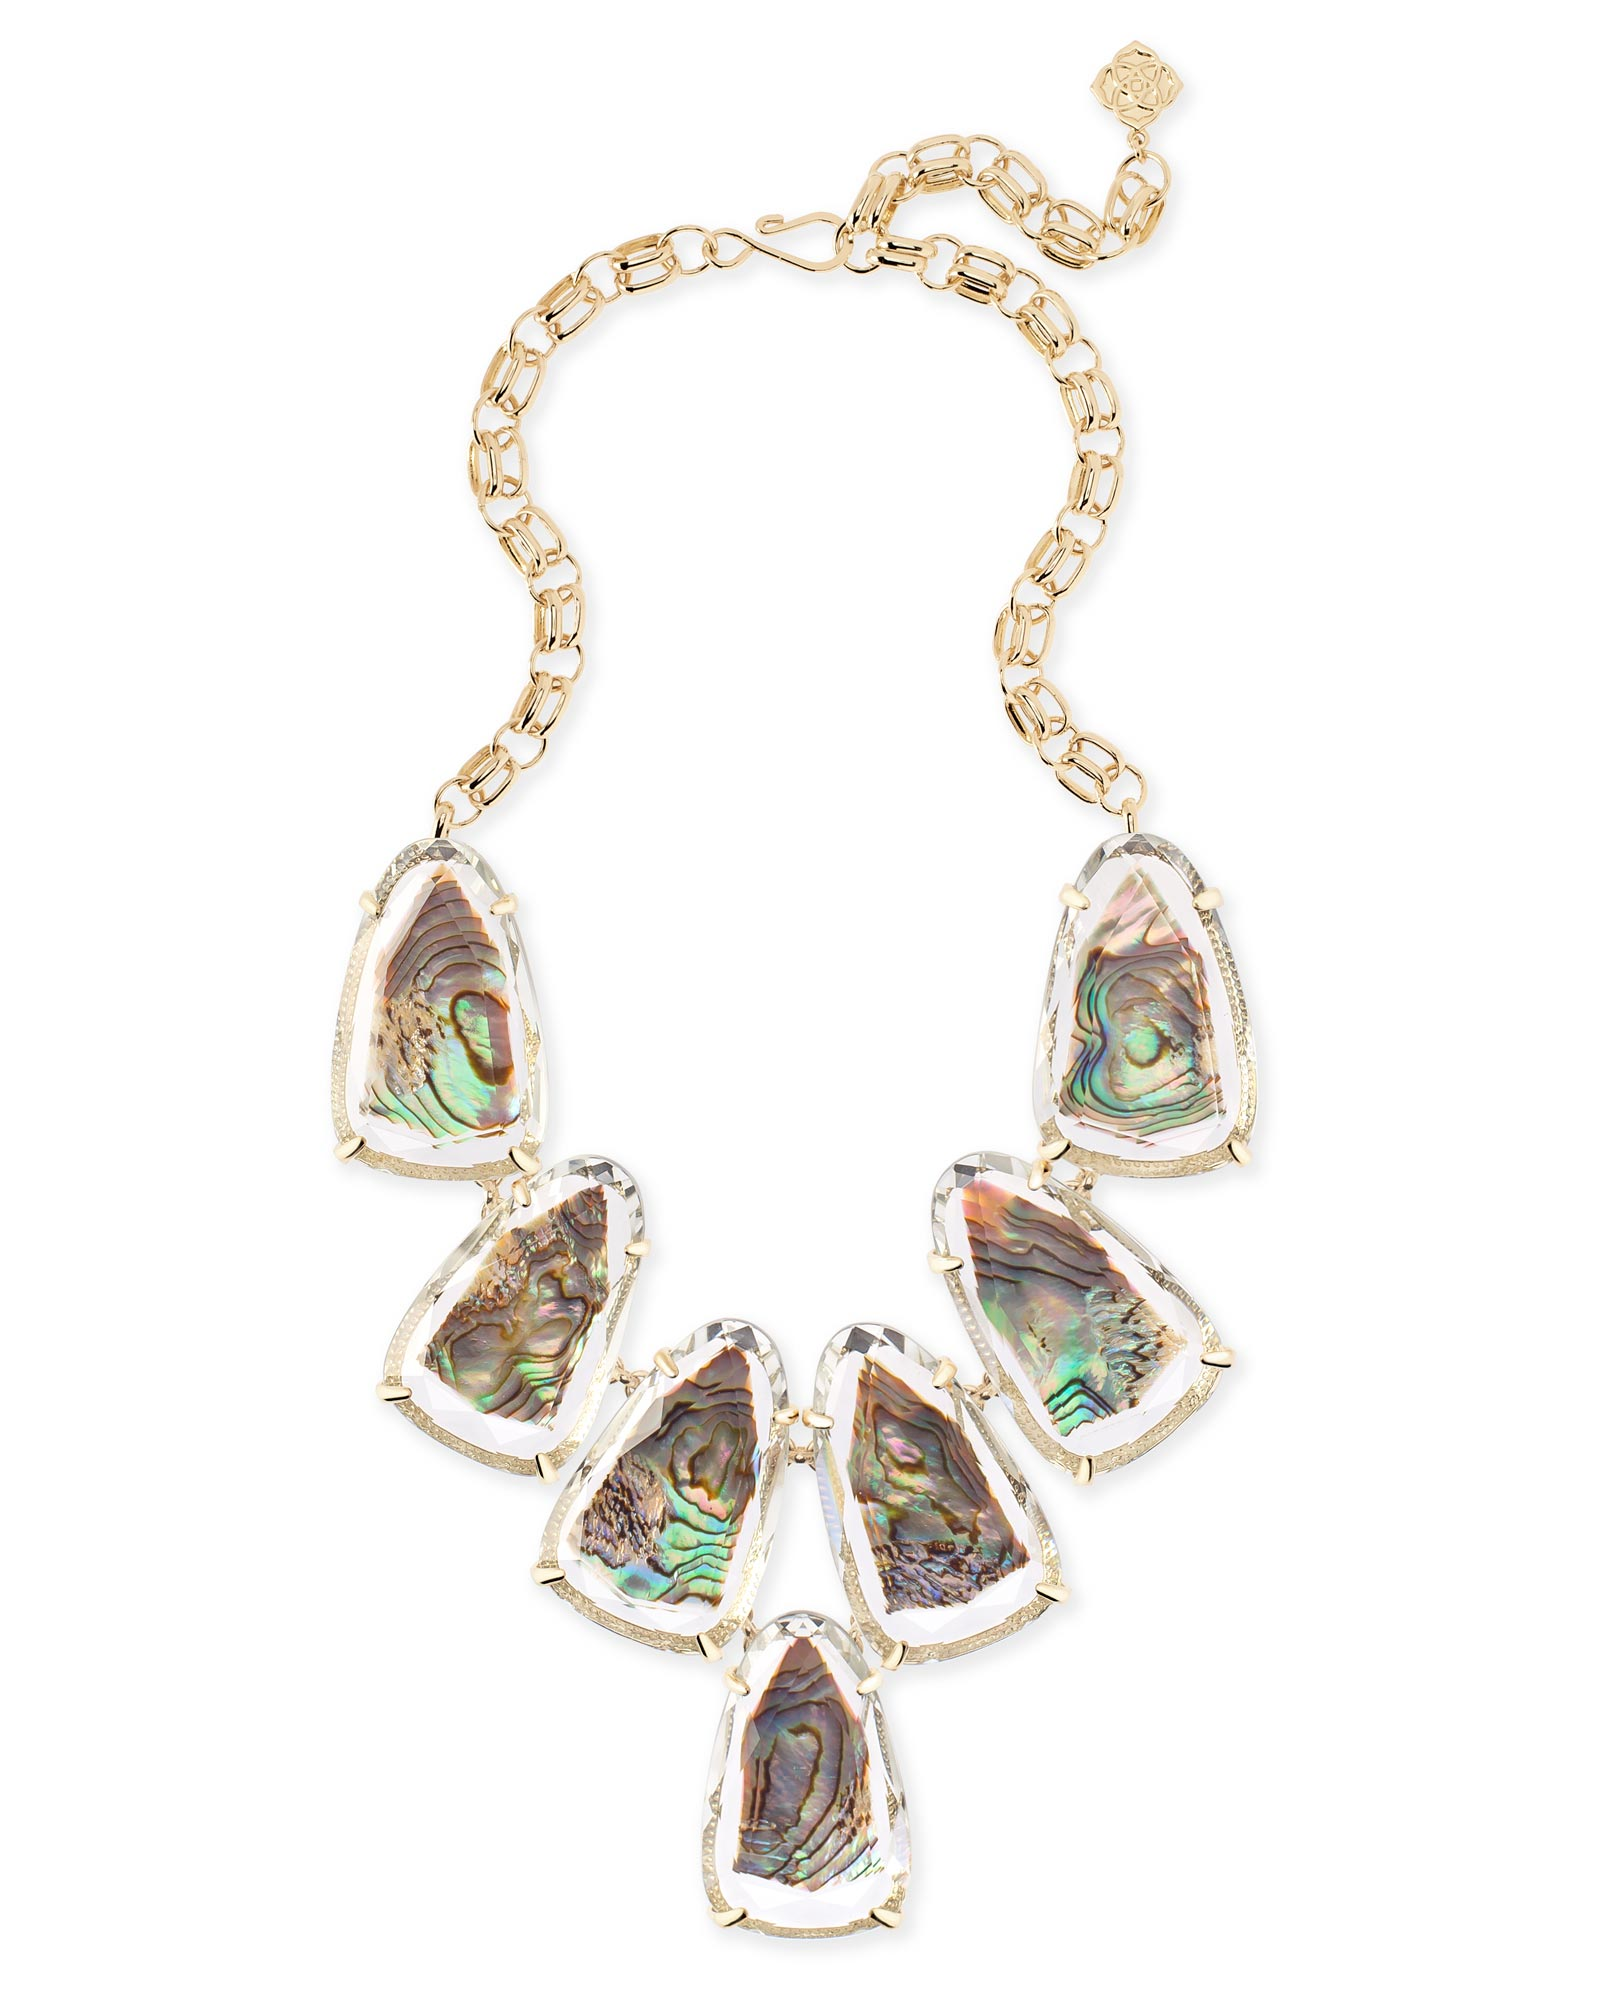 Harlow Statement Necklace in Suspended Abalone Shell